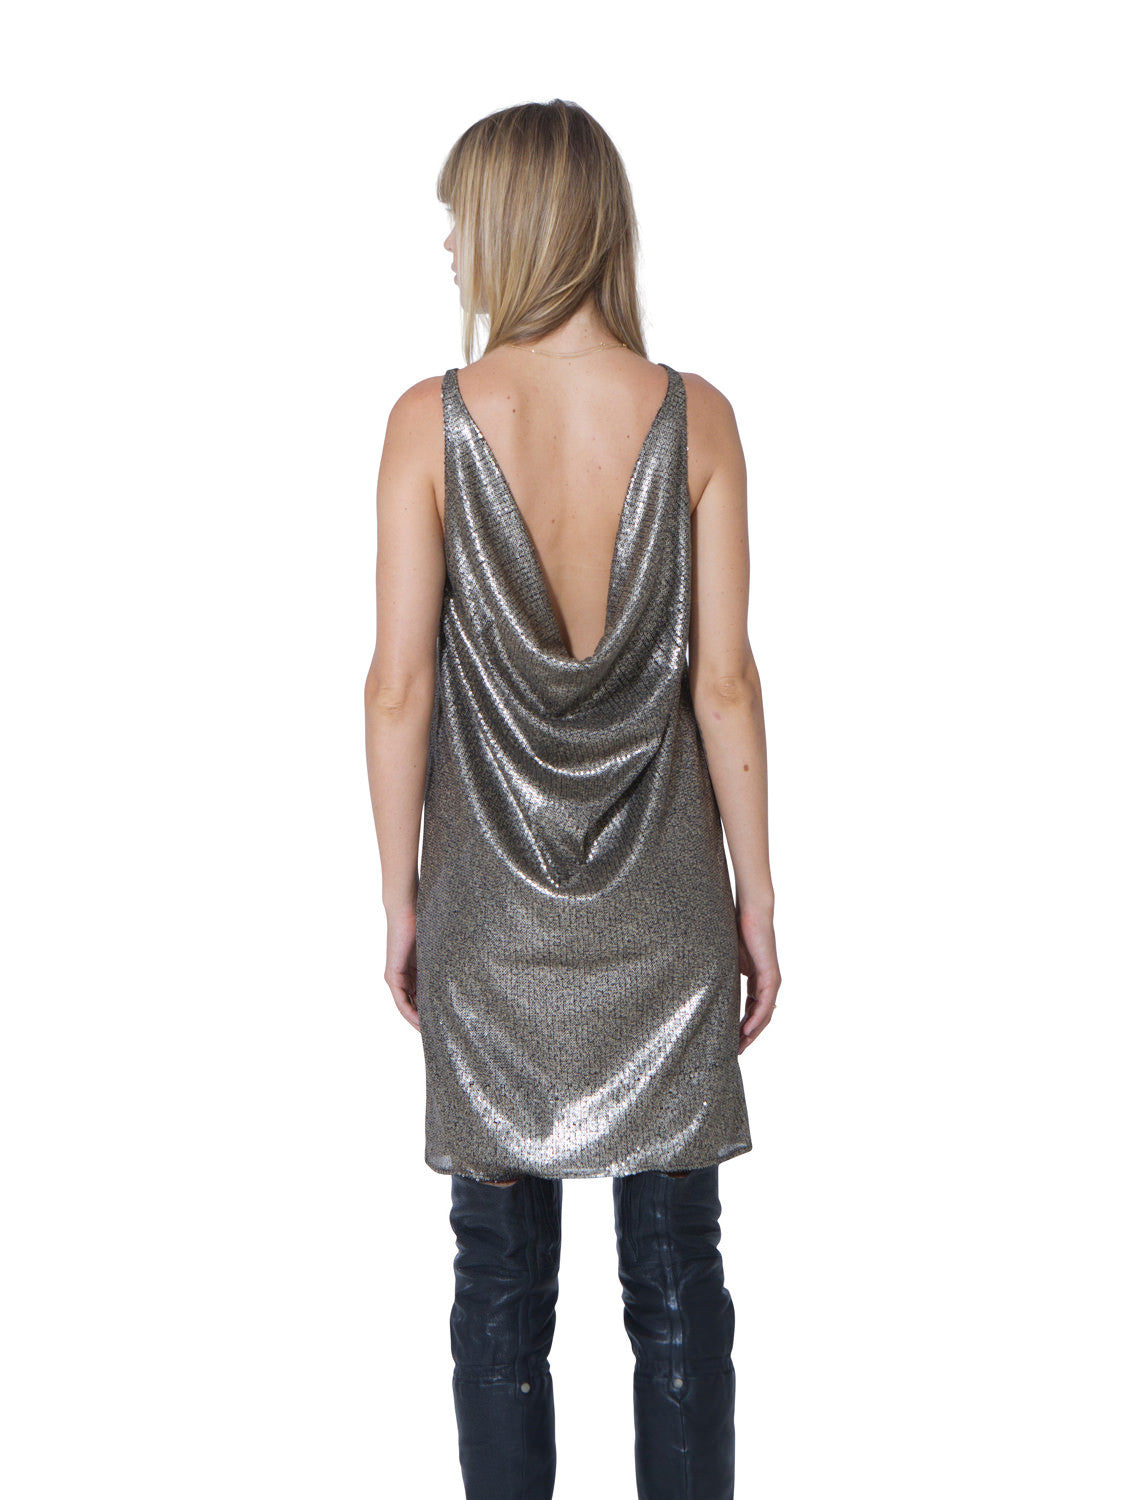 CLOSE TO HEAVEN SEQUIN DRESS - Little Joe Woman by Gail Elliott E-Boutique  - 5